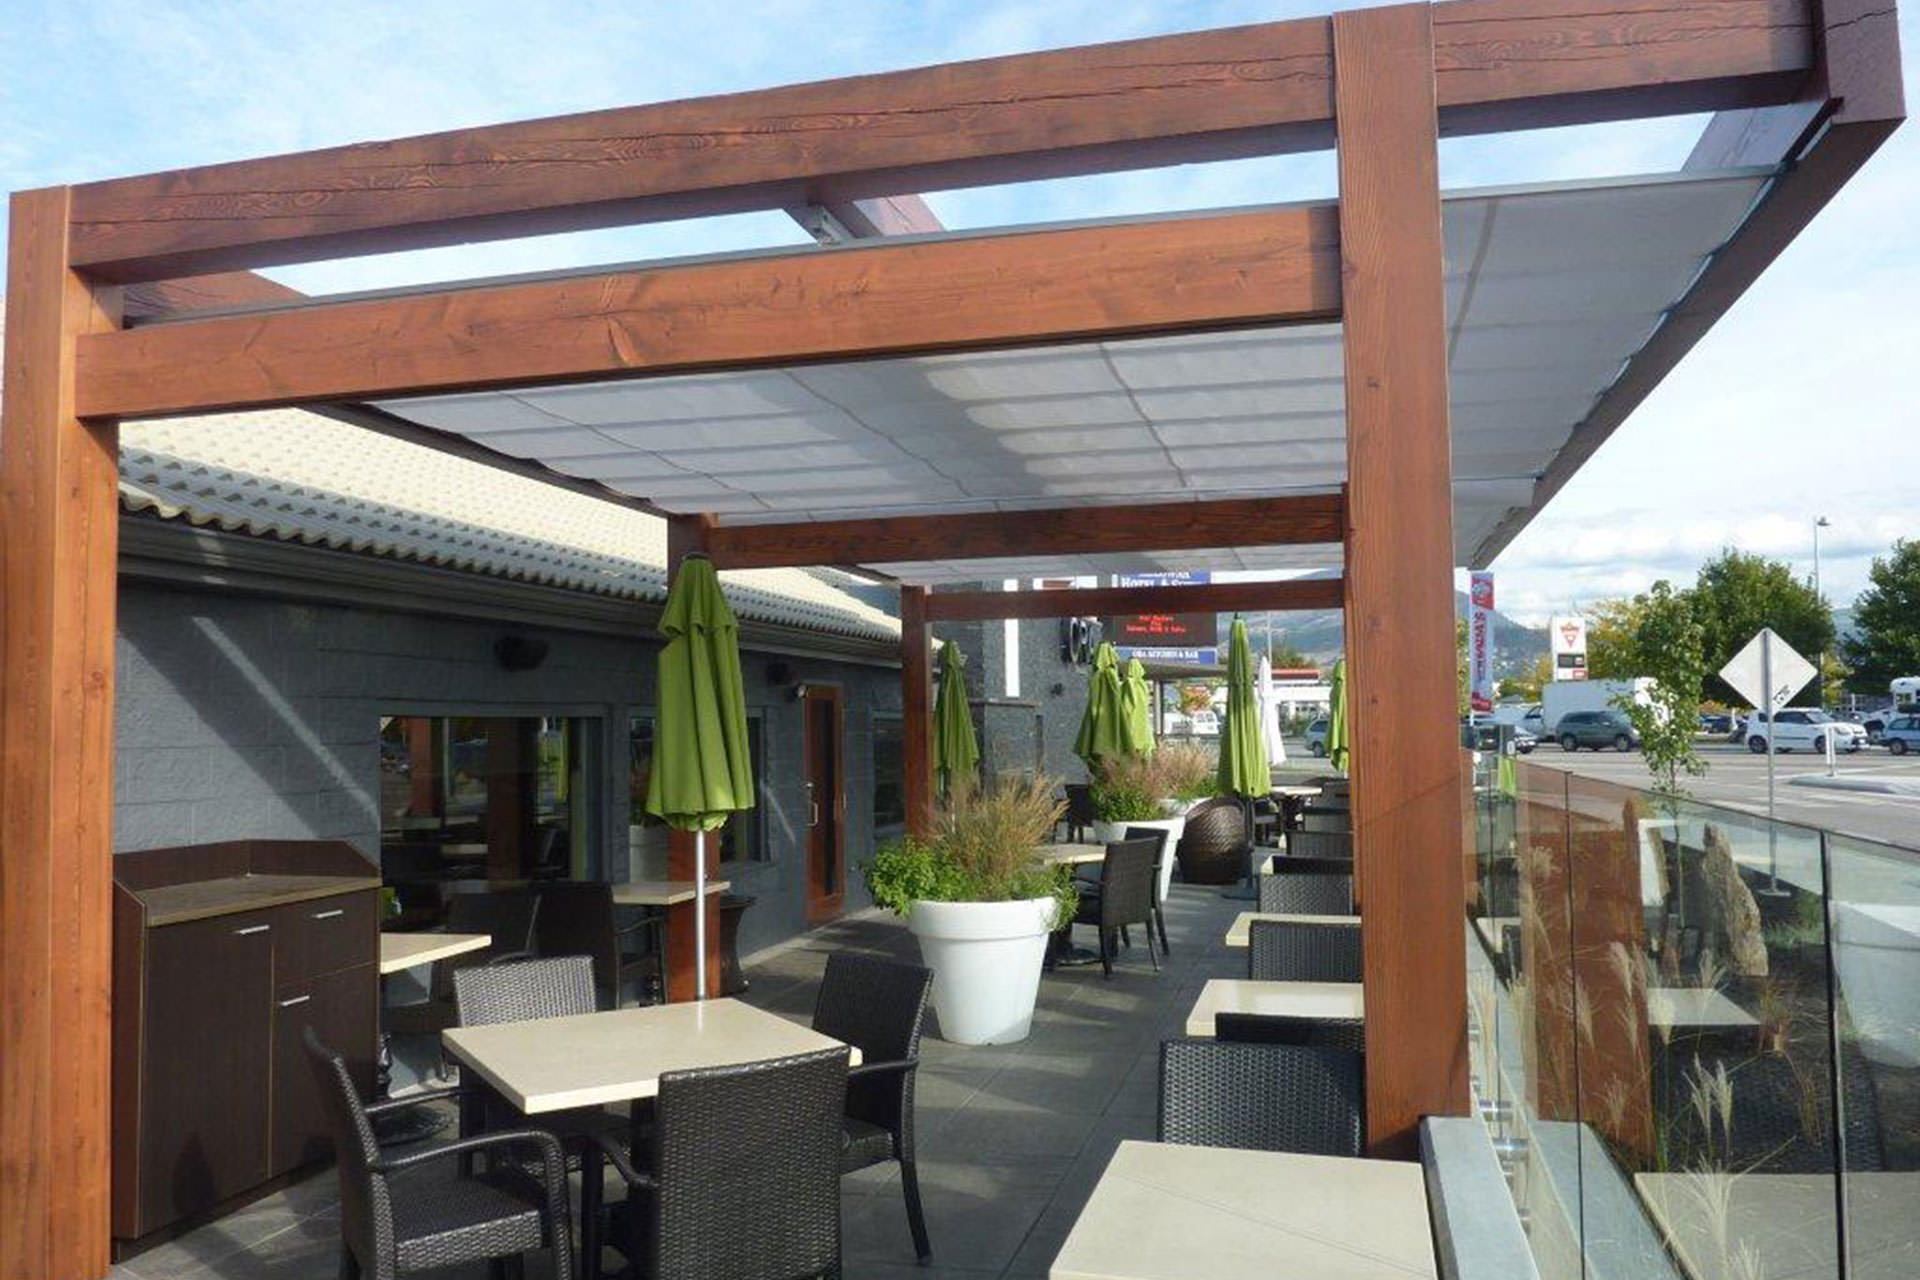 Pergola Roof - ShadeFX - Cantilevered